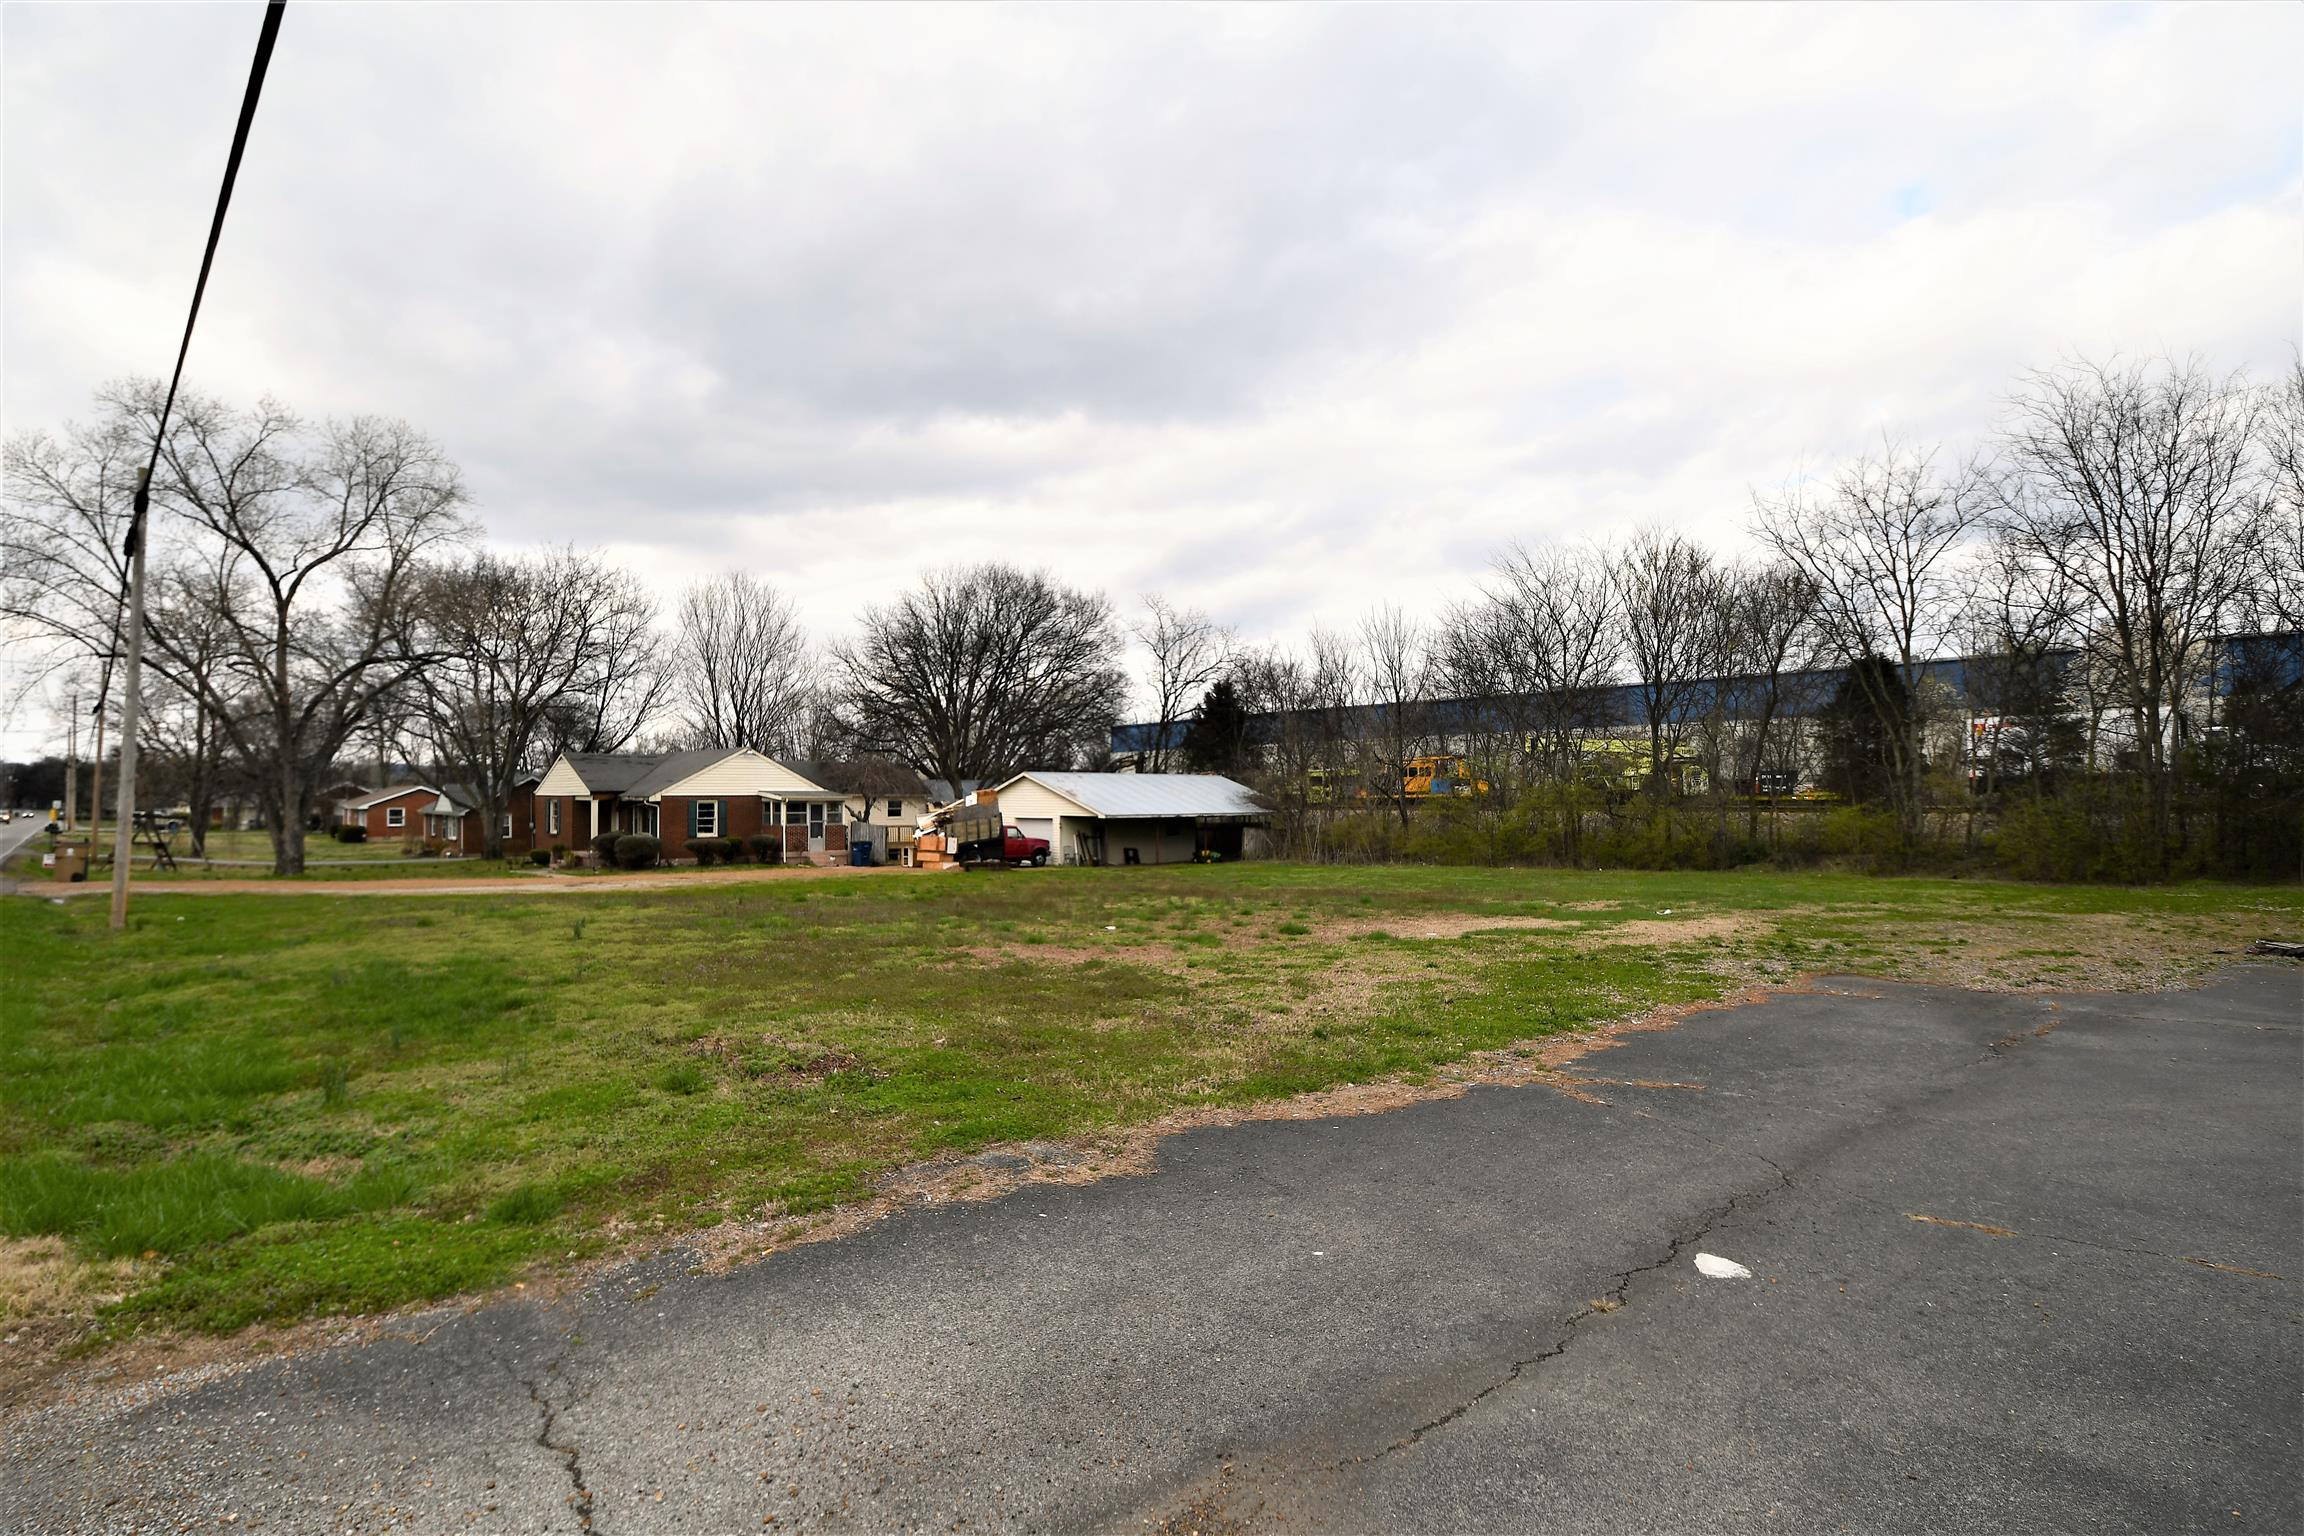 310 2 Mile Pike, Goodlettsville in Davidson County County, TN 37072 Home for Sale